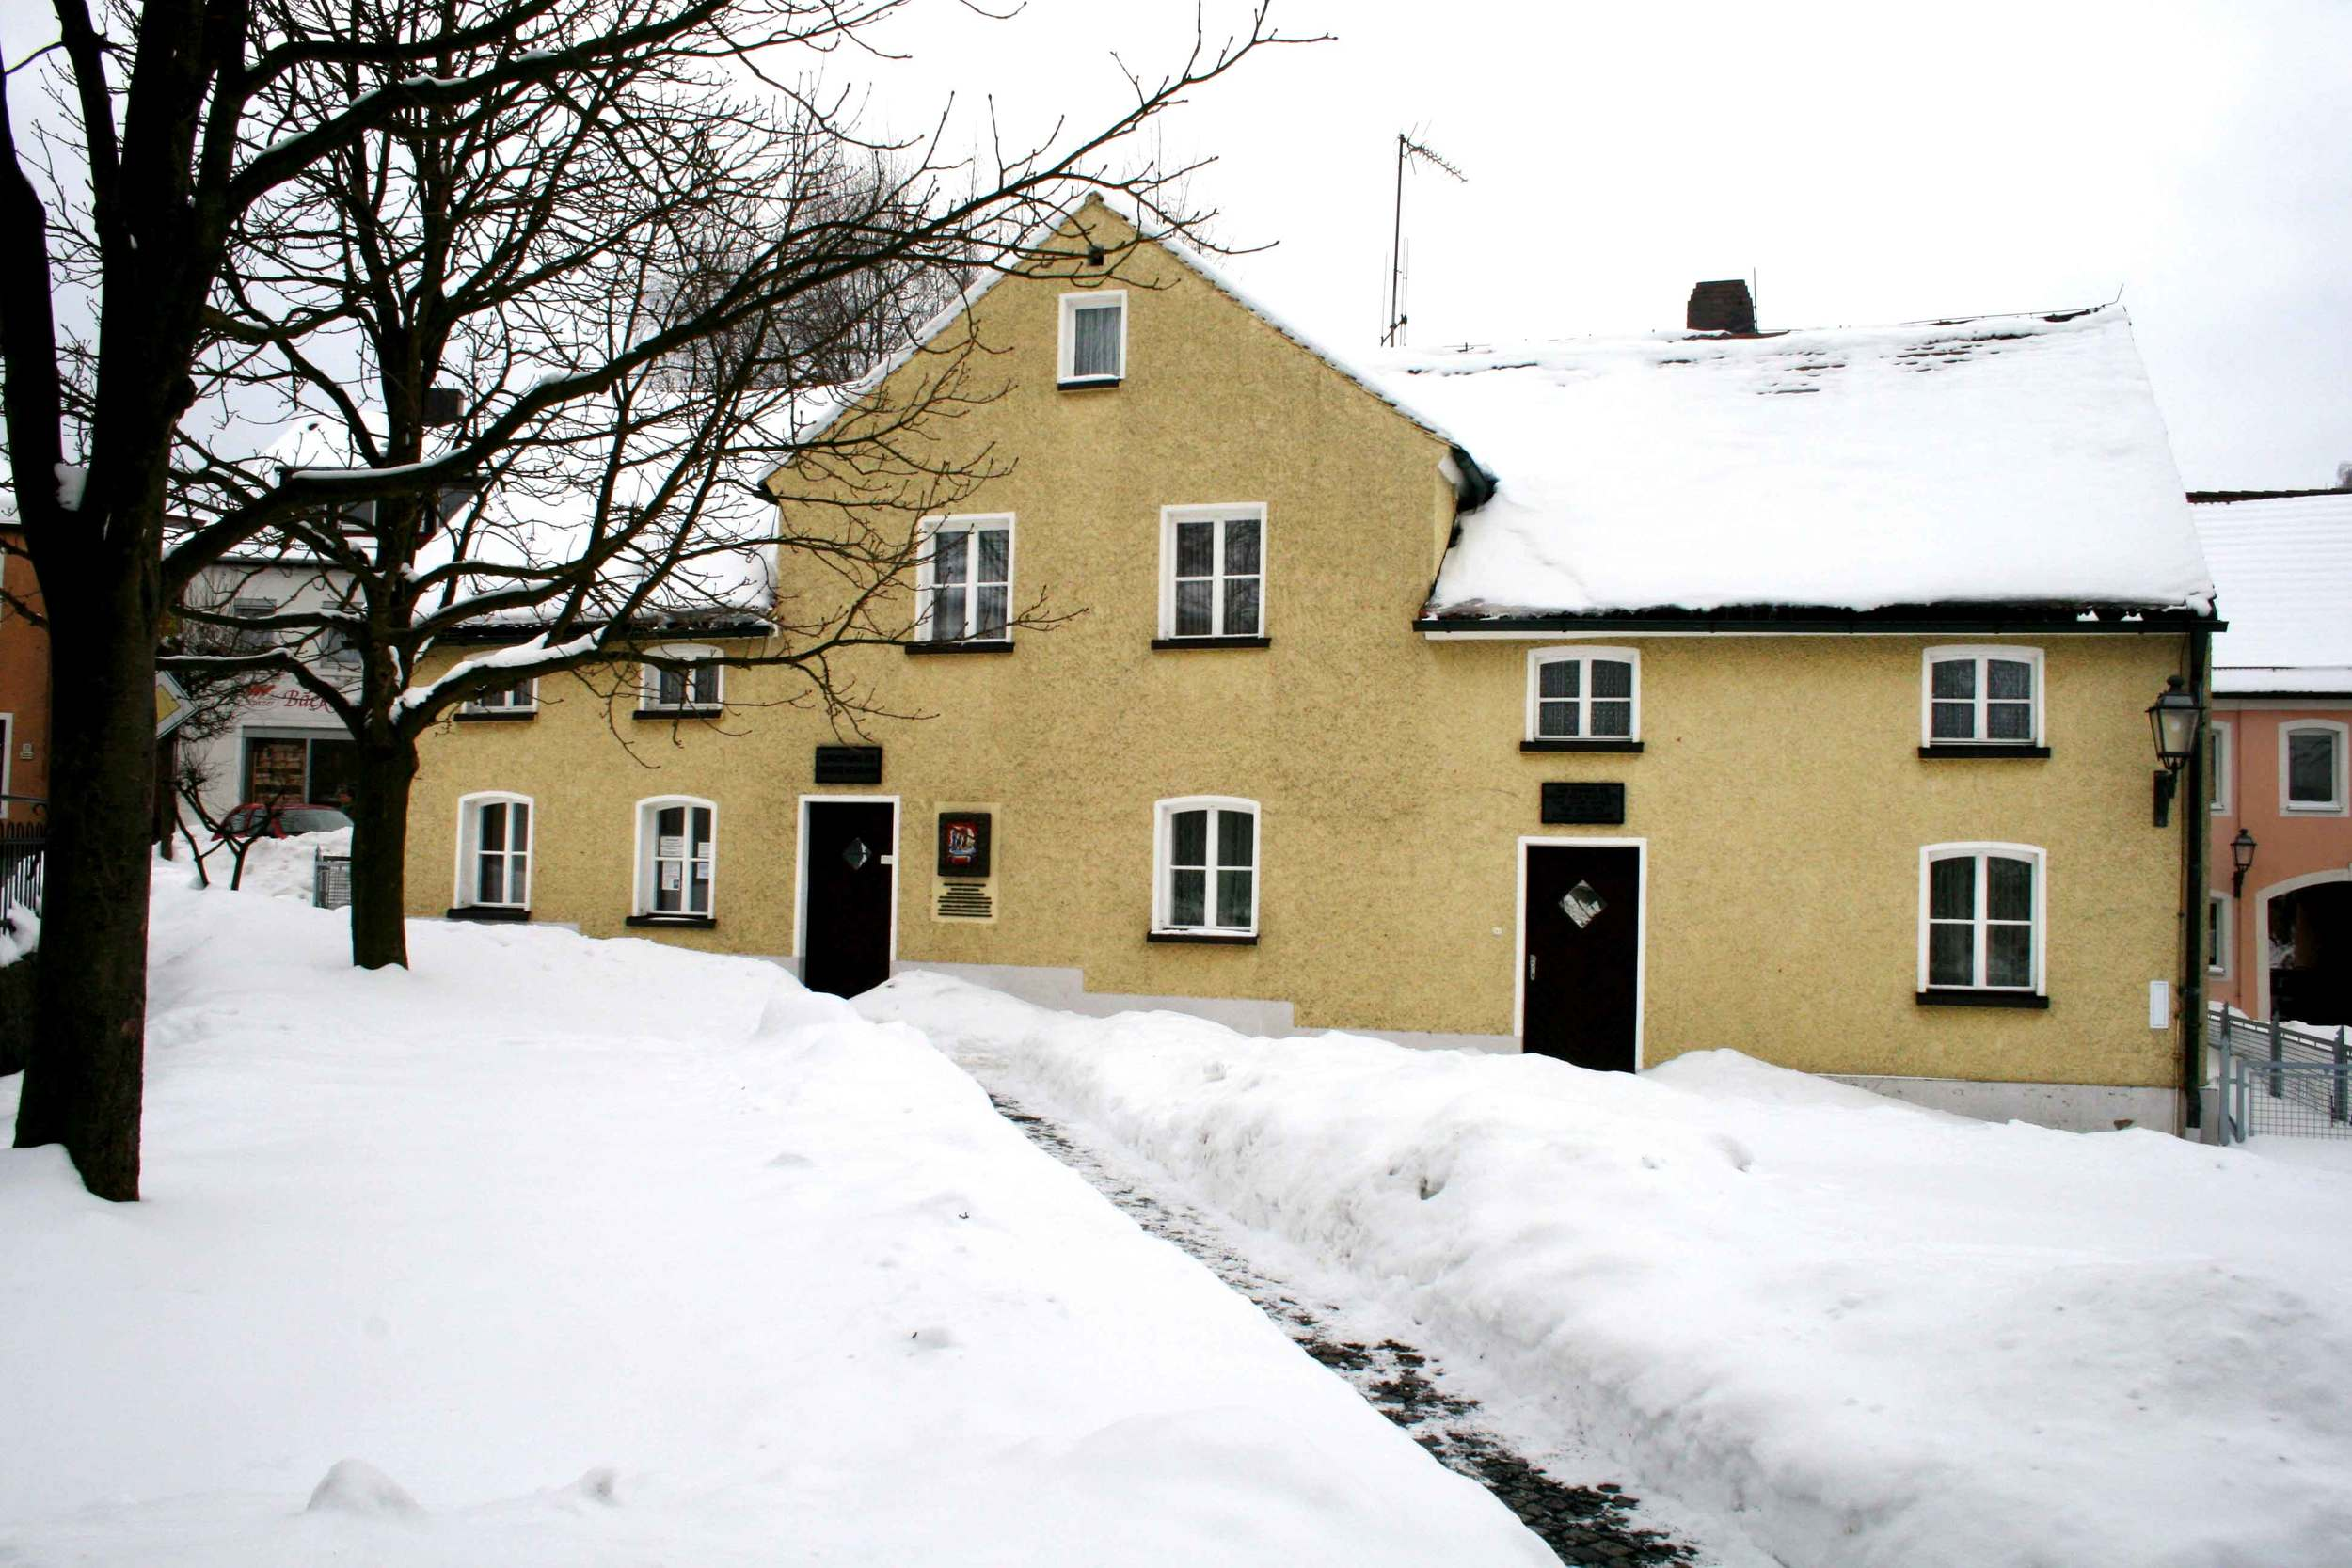 Image©sourcingstyle.com, house of Saint Therese Neumann, Konnersreuth, Bavaria, Germany.